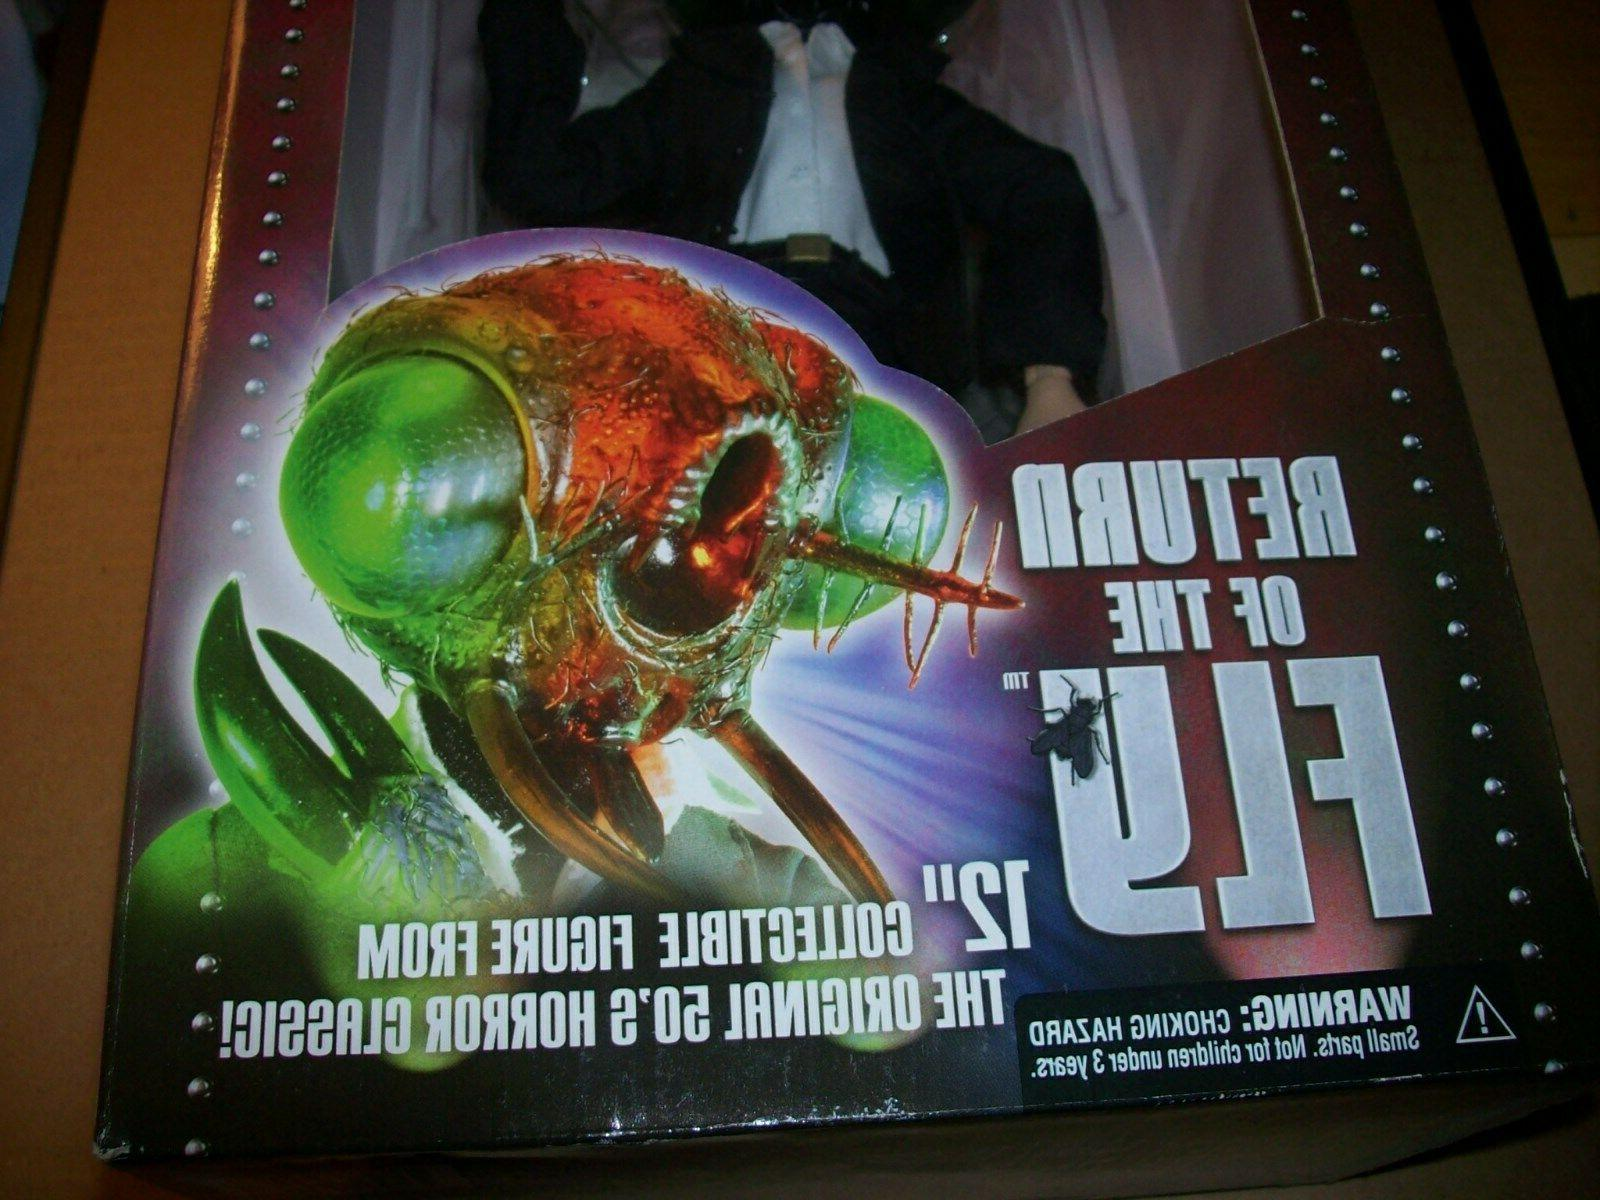 RETURN THE 12 COLLECTIBLE FILM FREAKS,